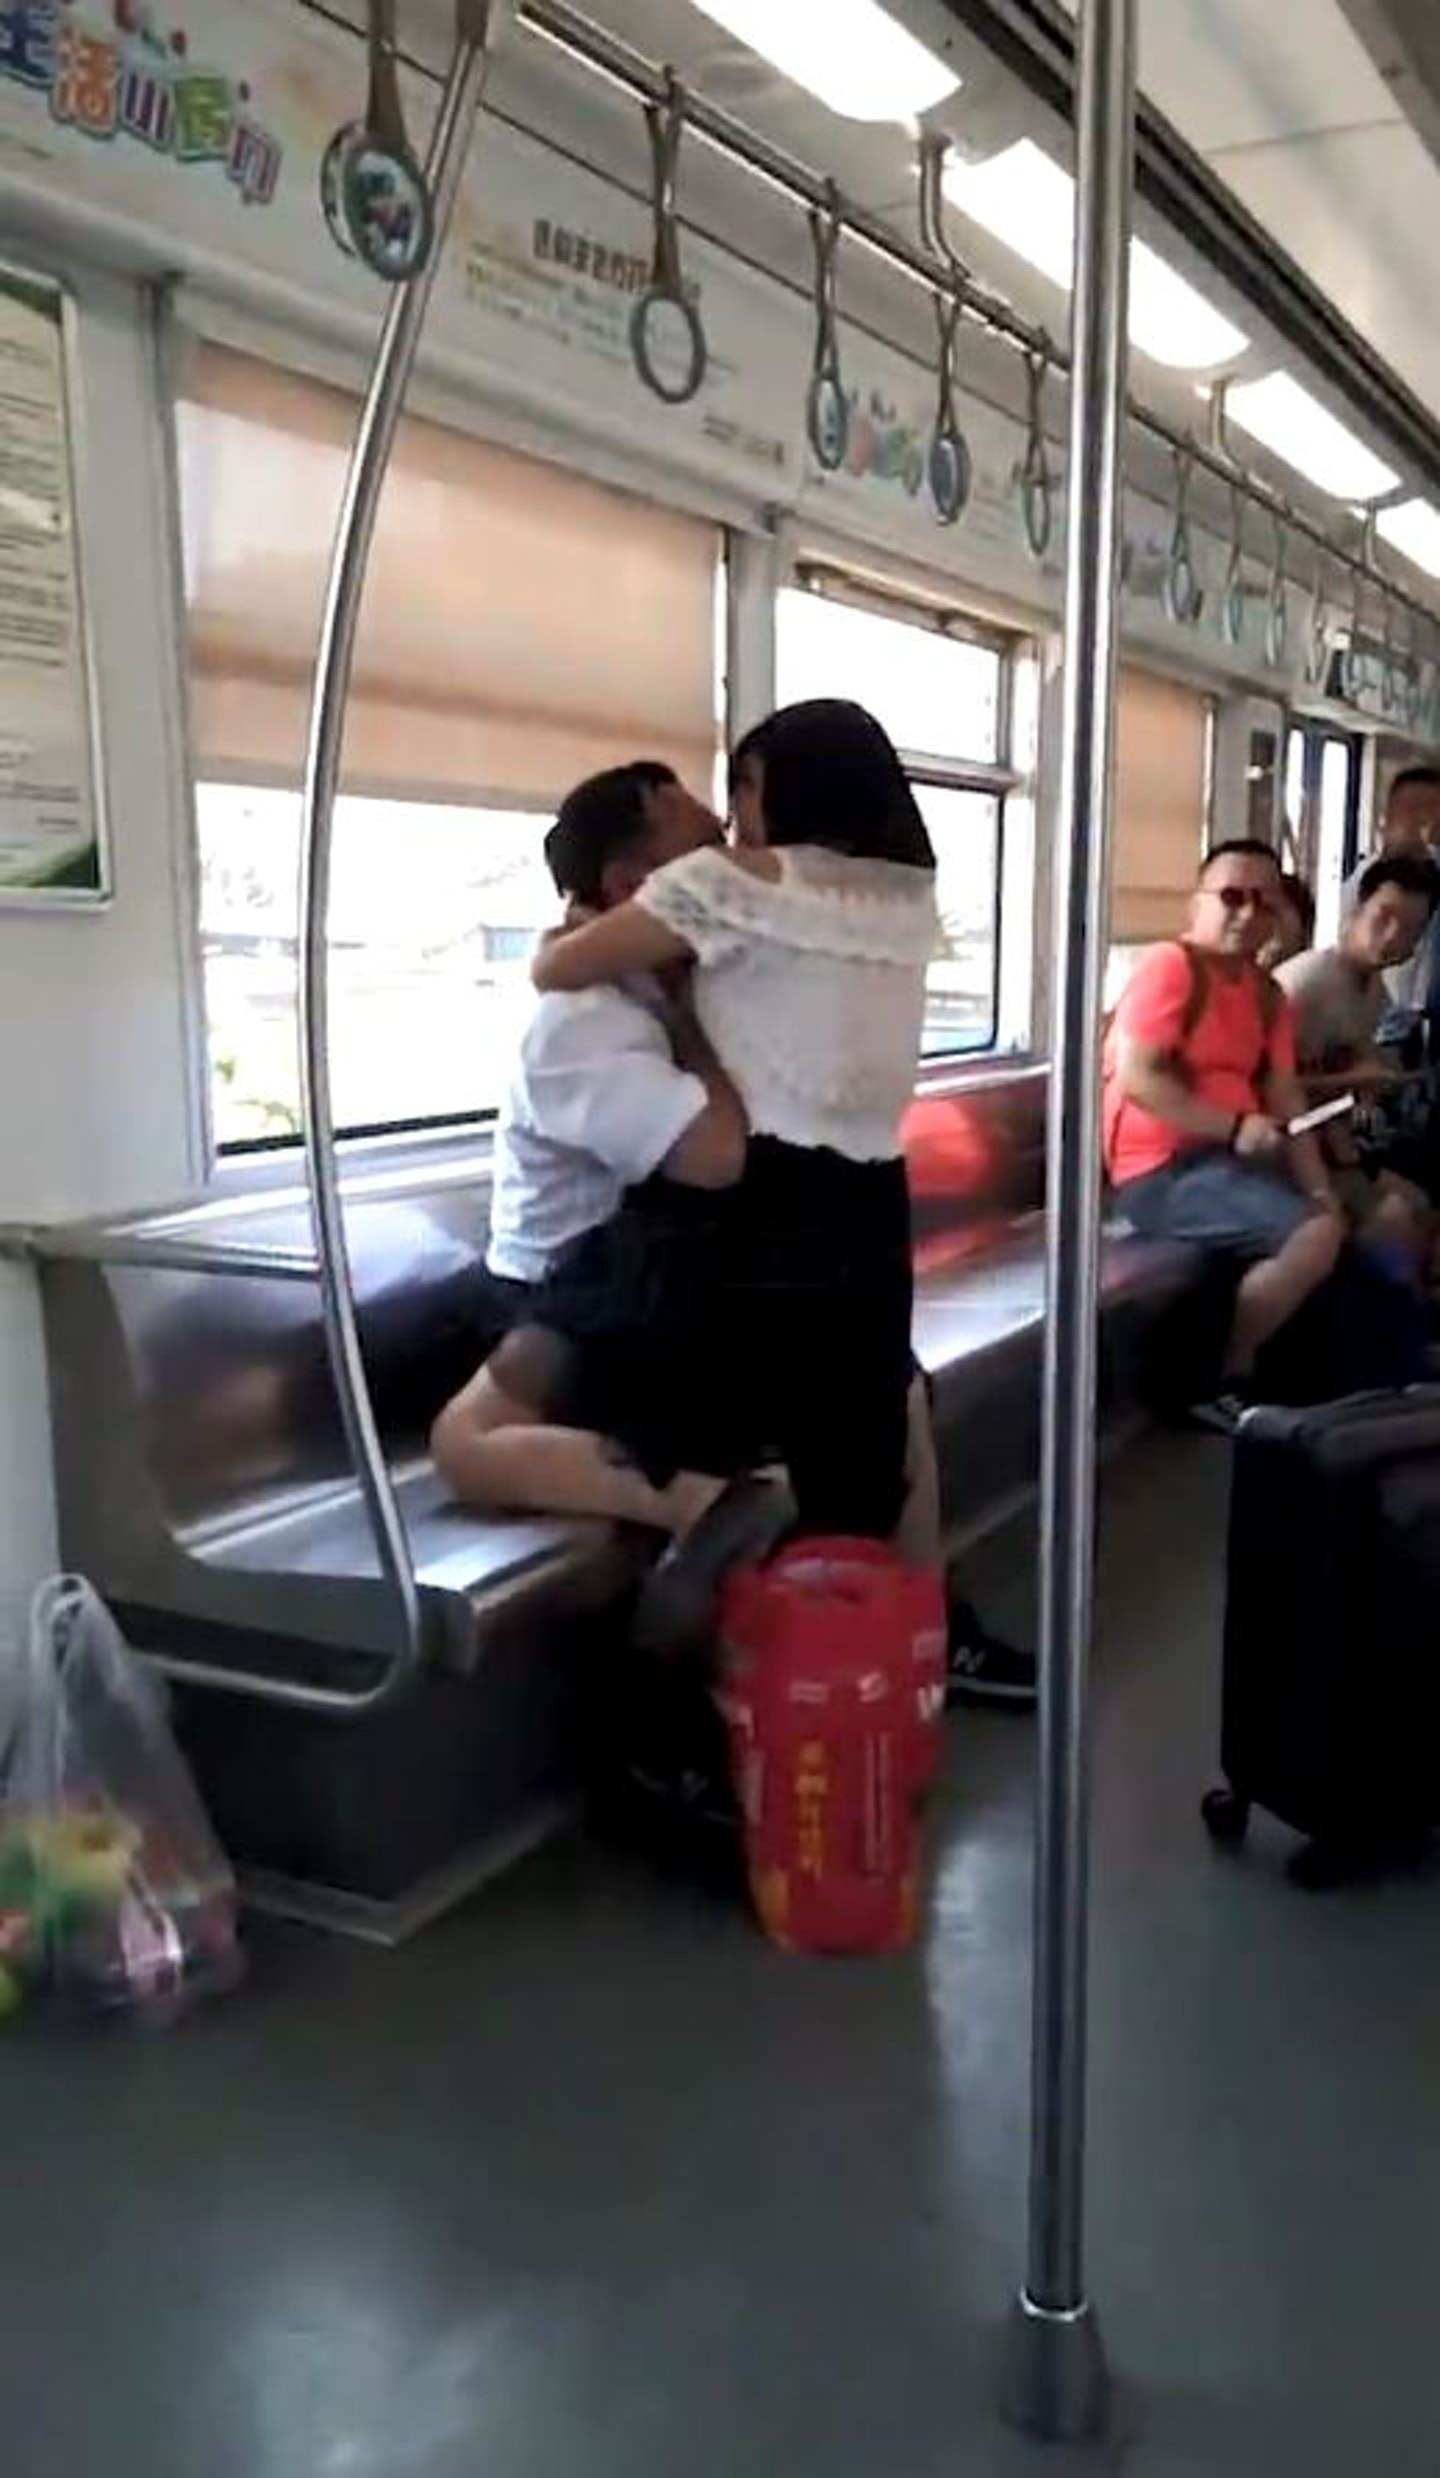 Video chinese woman on subway bites a man and then licks his blood image via hk newsyoutube stopboris Choice Image